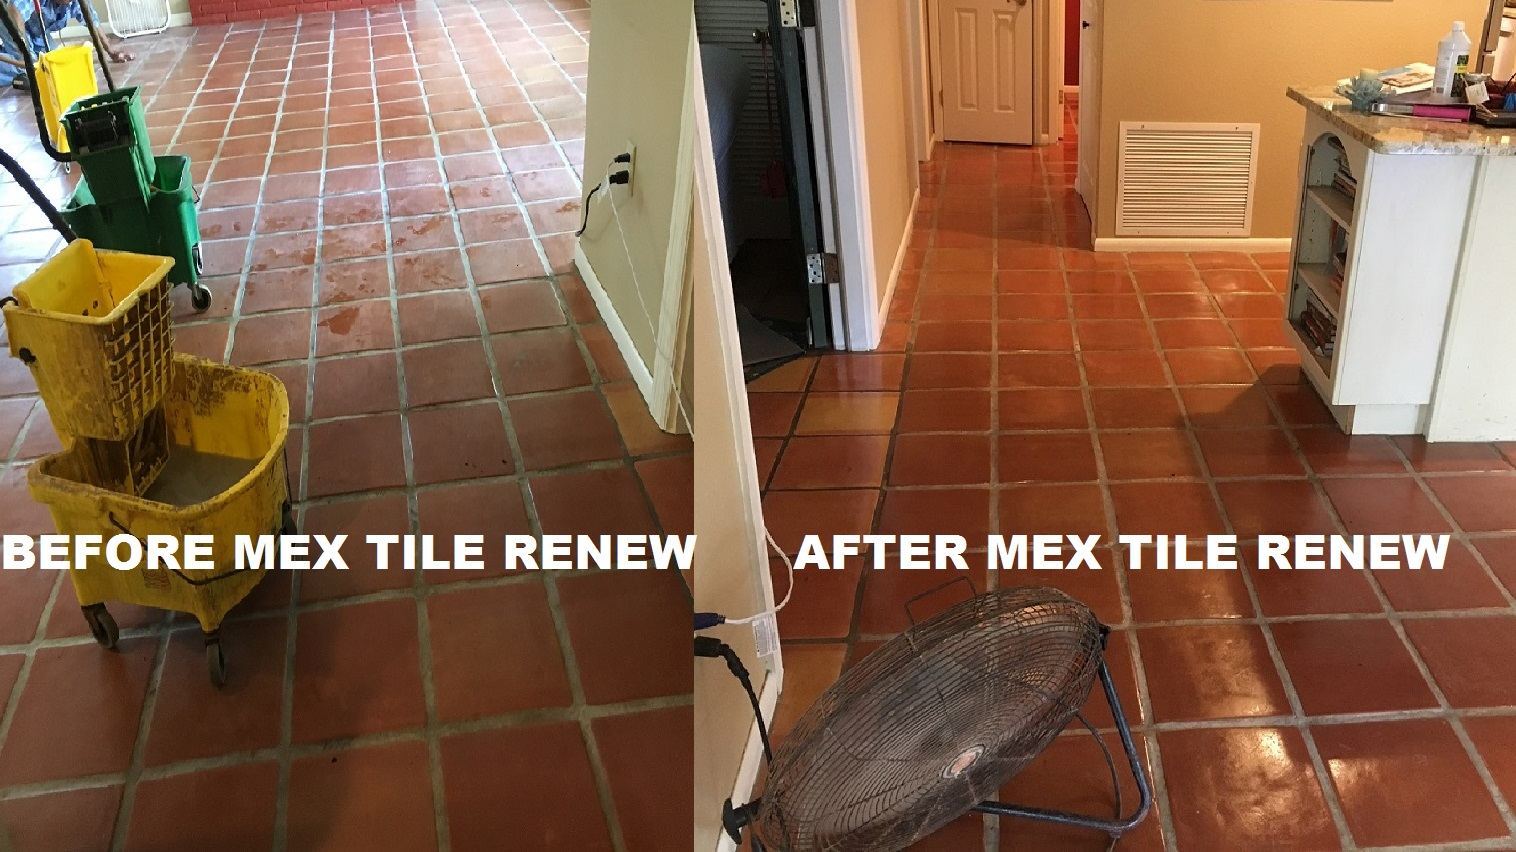 Mexican tile sarasota fl better business bureau approved mexican tile renew project in sarasota fl with light colored grout never clean your mexican tile floor with vinegar it will ruin the finish and darken the doublecrazyfo Gallery